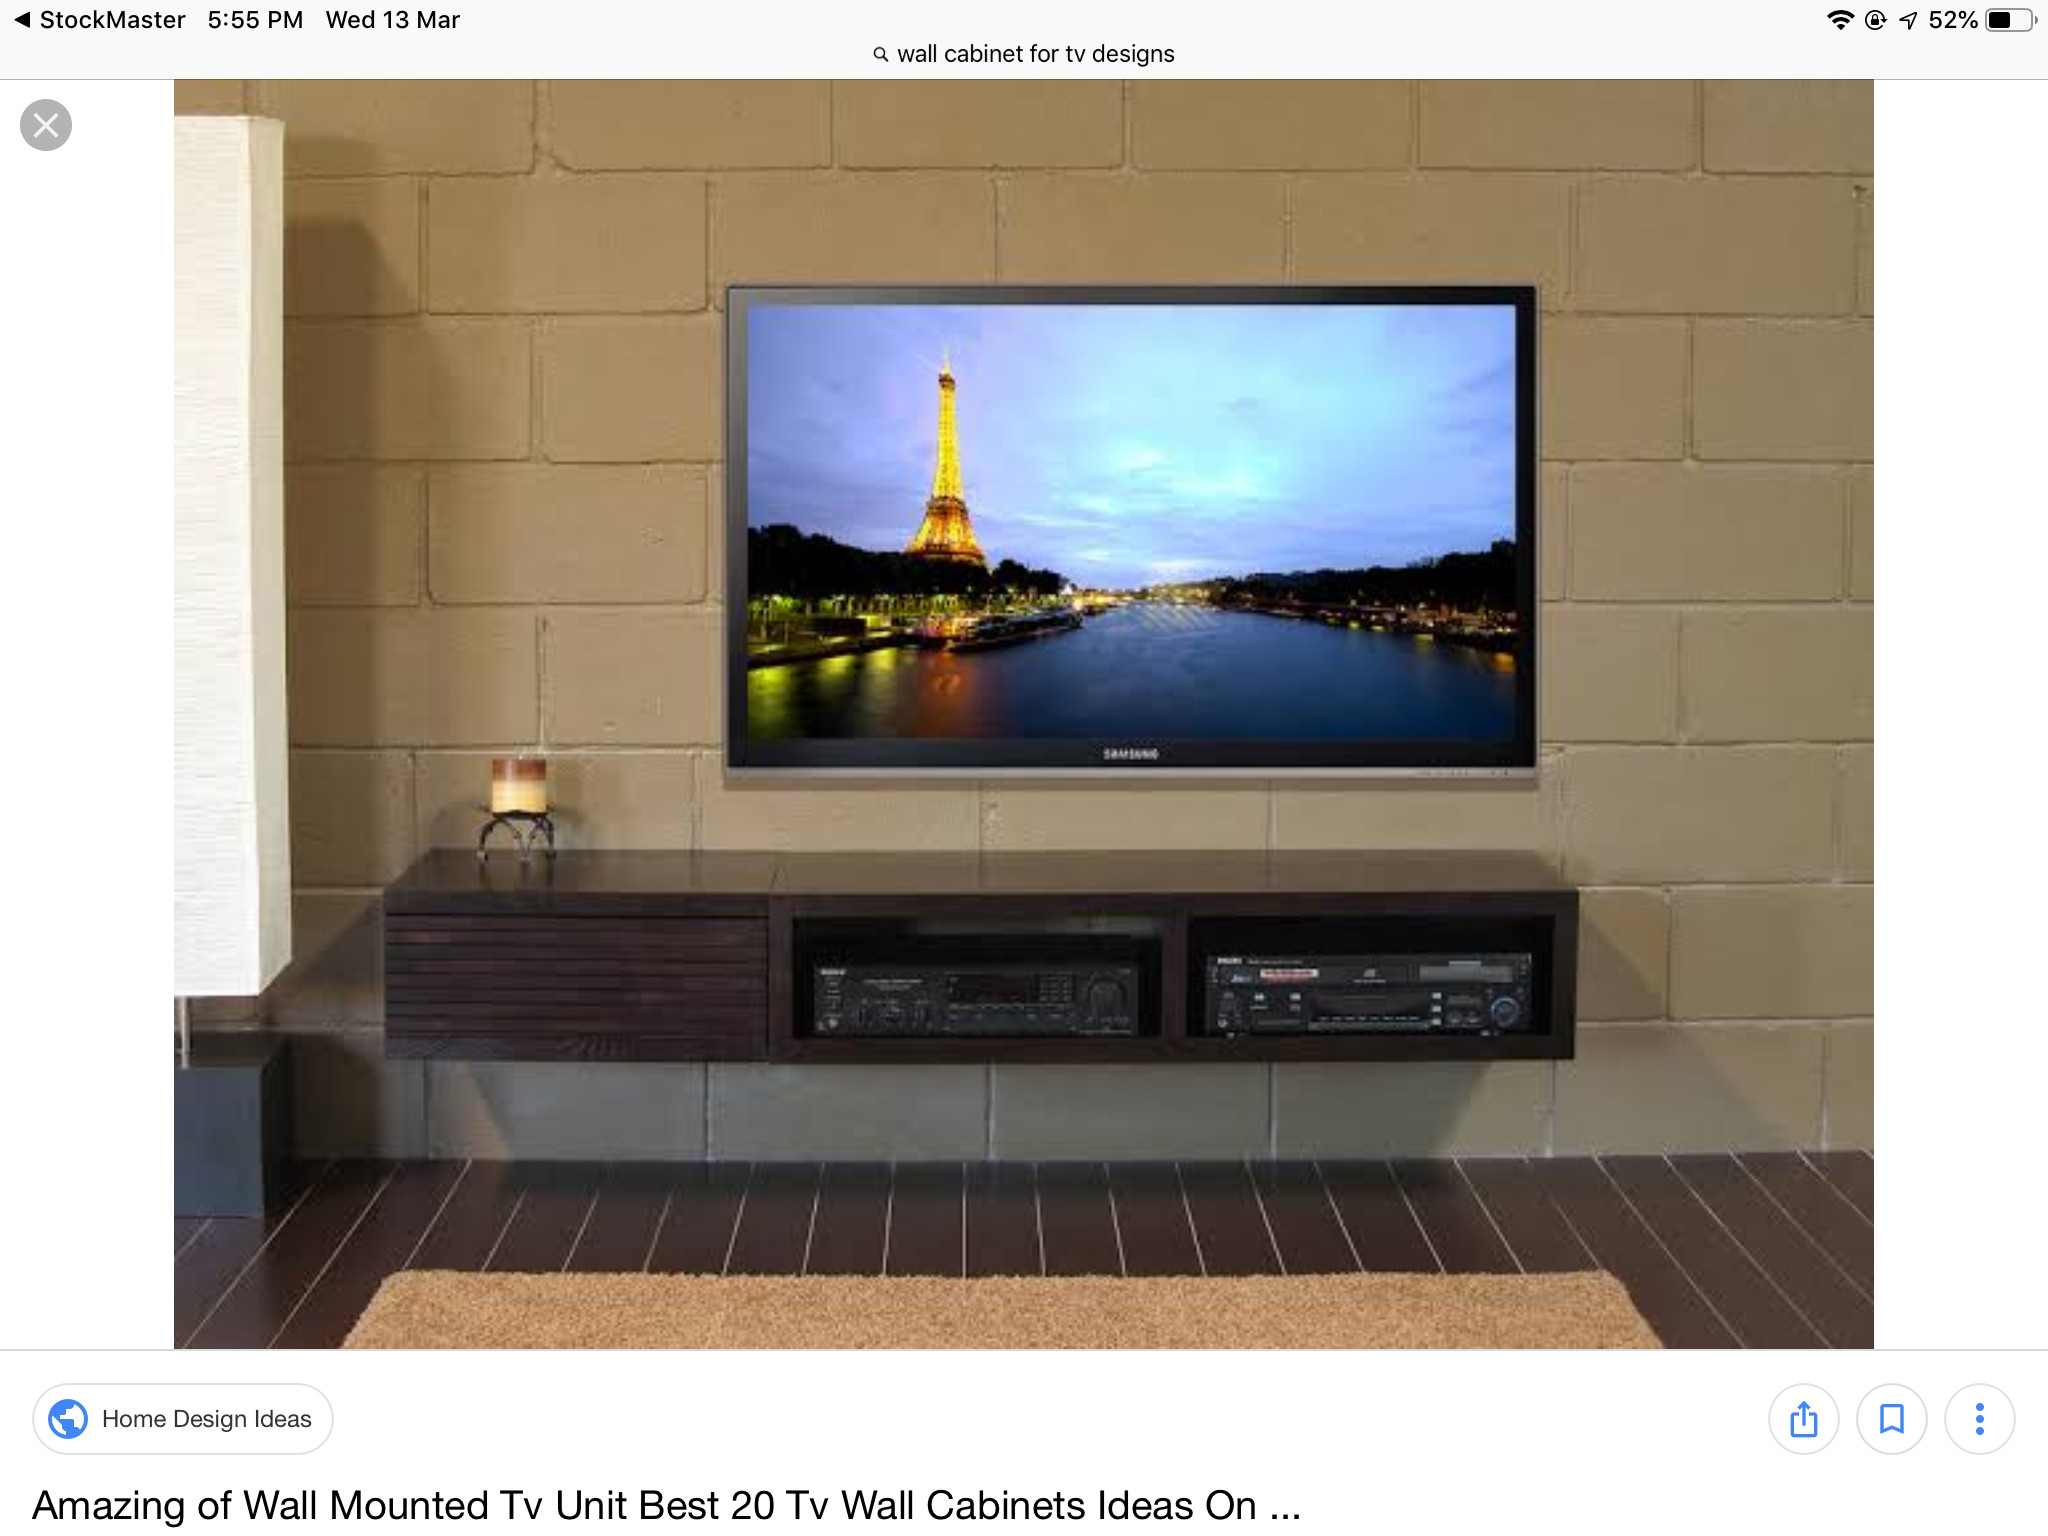 Wall Mounted Tv Ideas Bedroom Awesome Pin by Naeem On Wall Cabinet